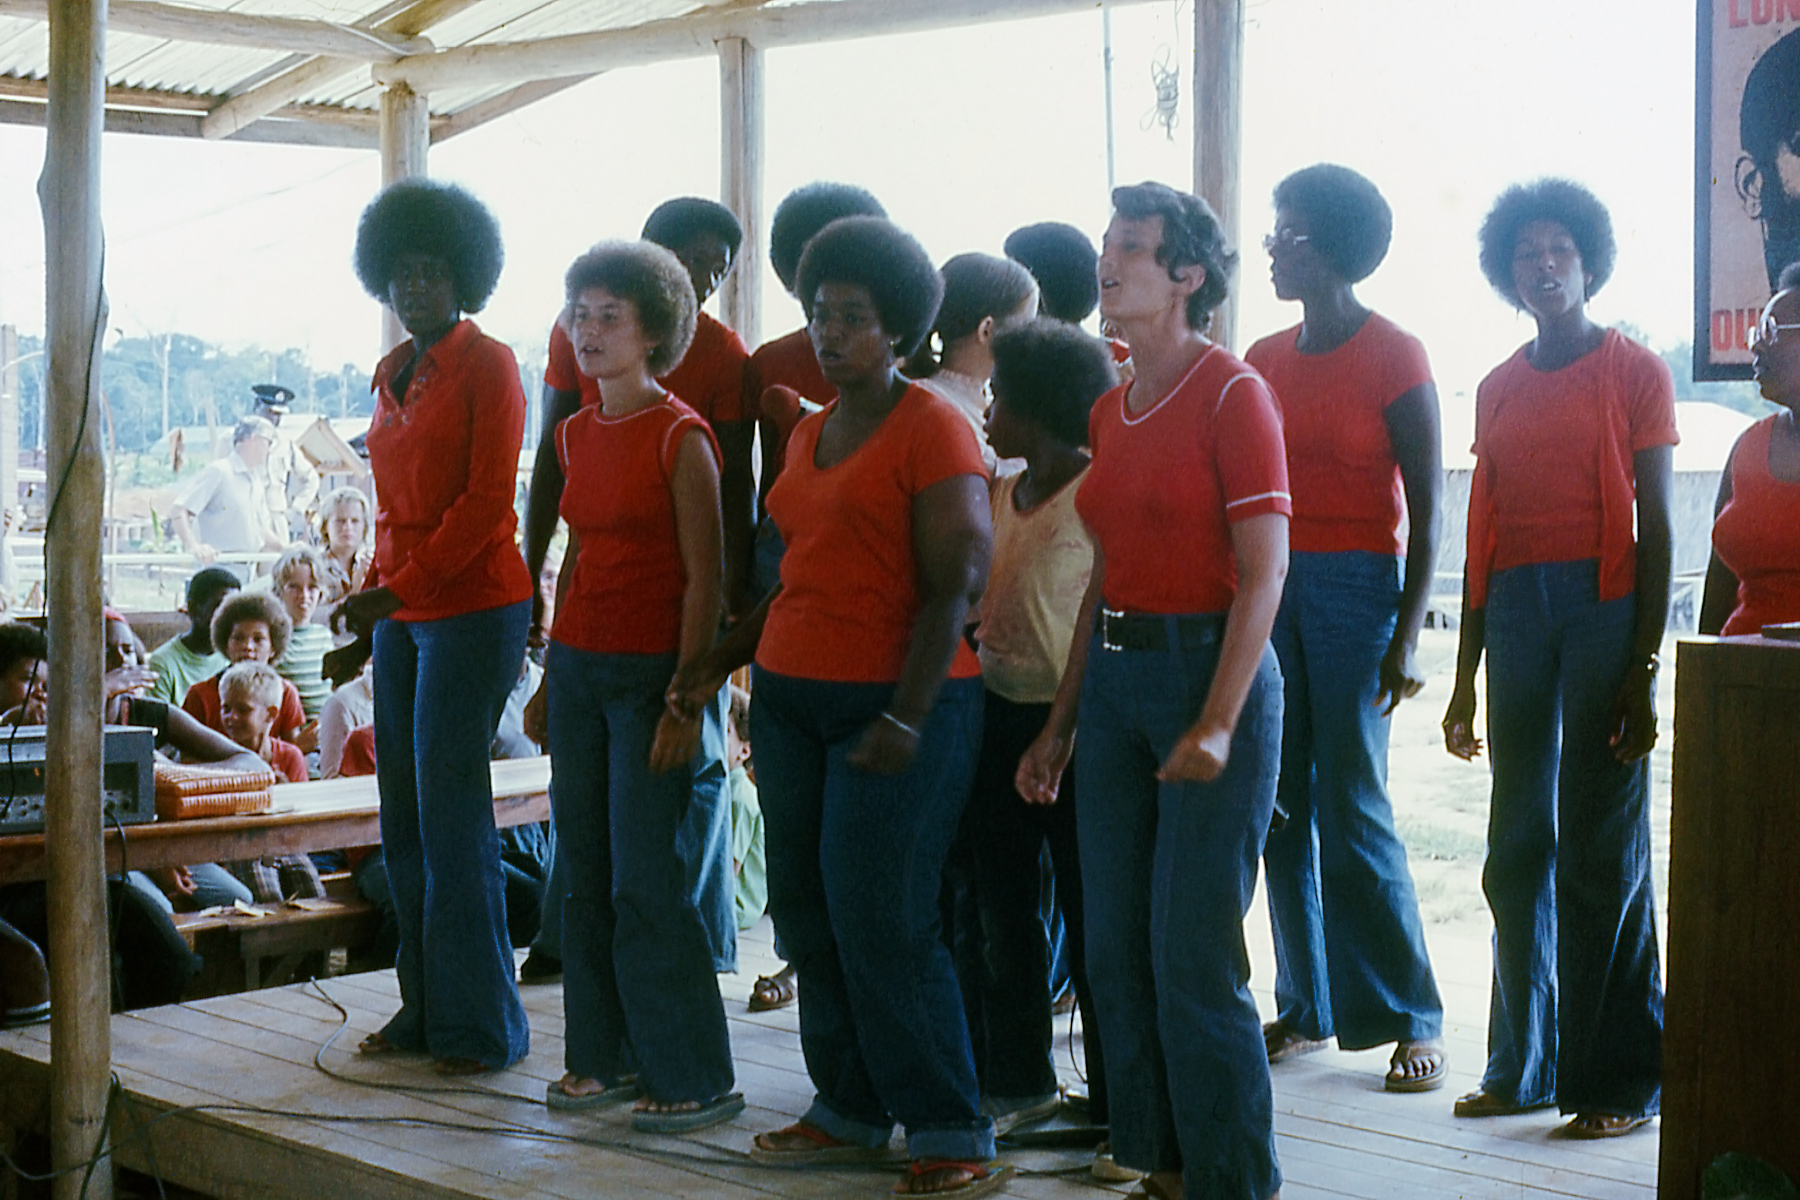 Peoples Temple members singing in pavilion, Jonestown, Guyana, circa 1977-1978 (l to r, front row) unidentified, Erin Leroy, Shirley Baisey, Laura Johnston, (r, back row) Anita James